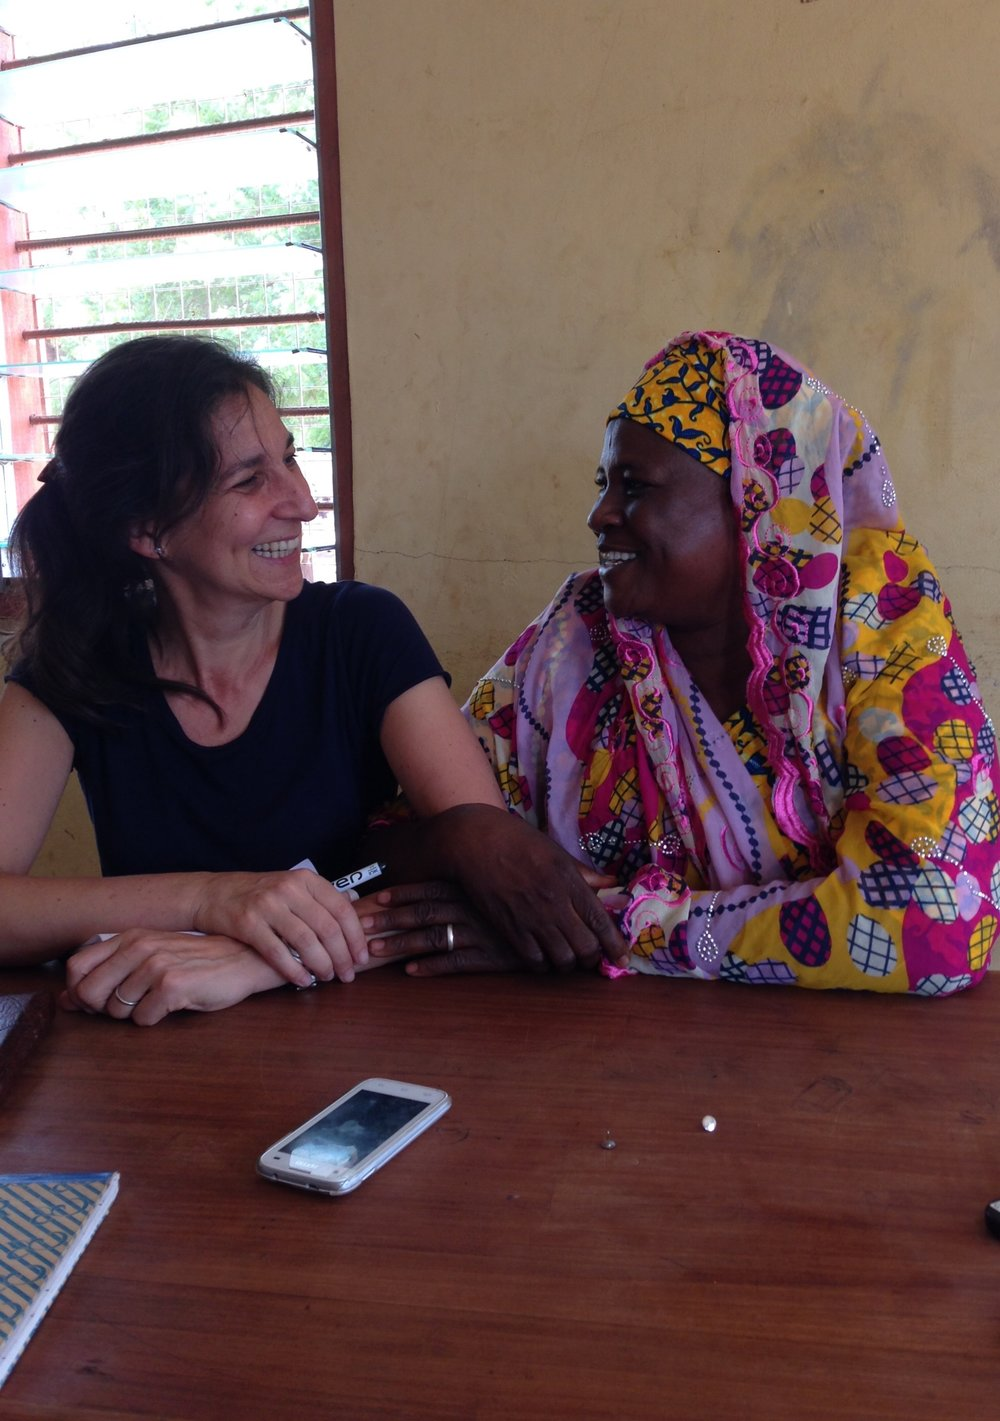 Our story & team - Our founder Anita Lowenstein Dent saw an opportunity to tackle lack of educational opportunity and youth unemployment in Ghana and beyond.